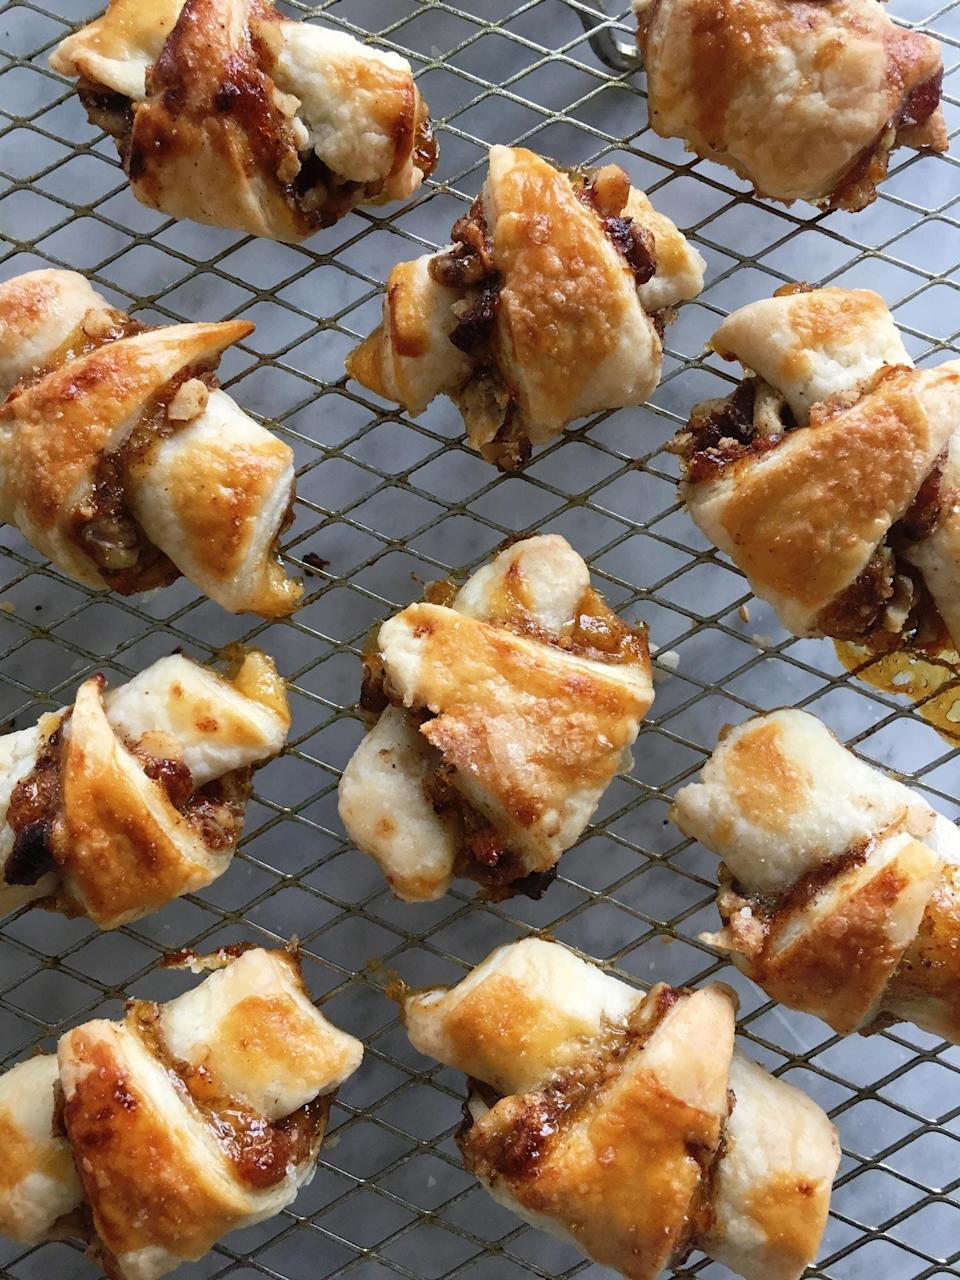 """<p>It's not a proper celebration of the festival of lights without a batch of rugelach. This classic Jewish cookie which is typically served during Hanukkah is an absolute must when it comes to holiday baking. Made with a super straightforward, 4-ingredient dough in the food processor, this pastry is far from intimidating. In this variation, we used our favorite apricot jam along with some hearty walnuts for the perfect fruit and nut dessert. If you don't have apricots or walnuts, any fruit and nut combination will do.</p> <p><a href=""""https://www.myrecipes.com/recipe/apricot-walnut-rugelach"""" rel=""""nofollow noopener"""" target=""""_blank"""" data-ylk=""""slk:Apricot and Walnut Rugelach Recipe"""" class=""""link rapid-noclick-resp"""">Apricot and Walnut Rugelach Recipe</a></p>"""